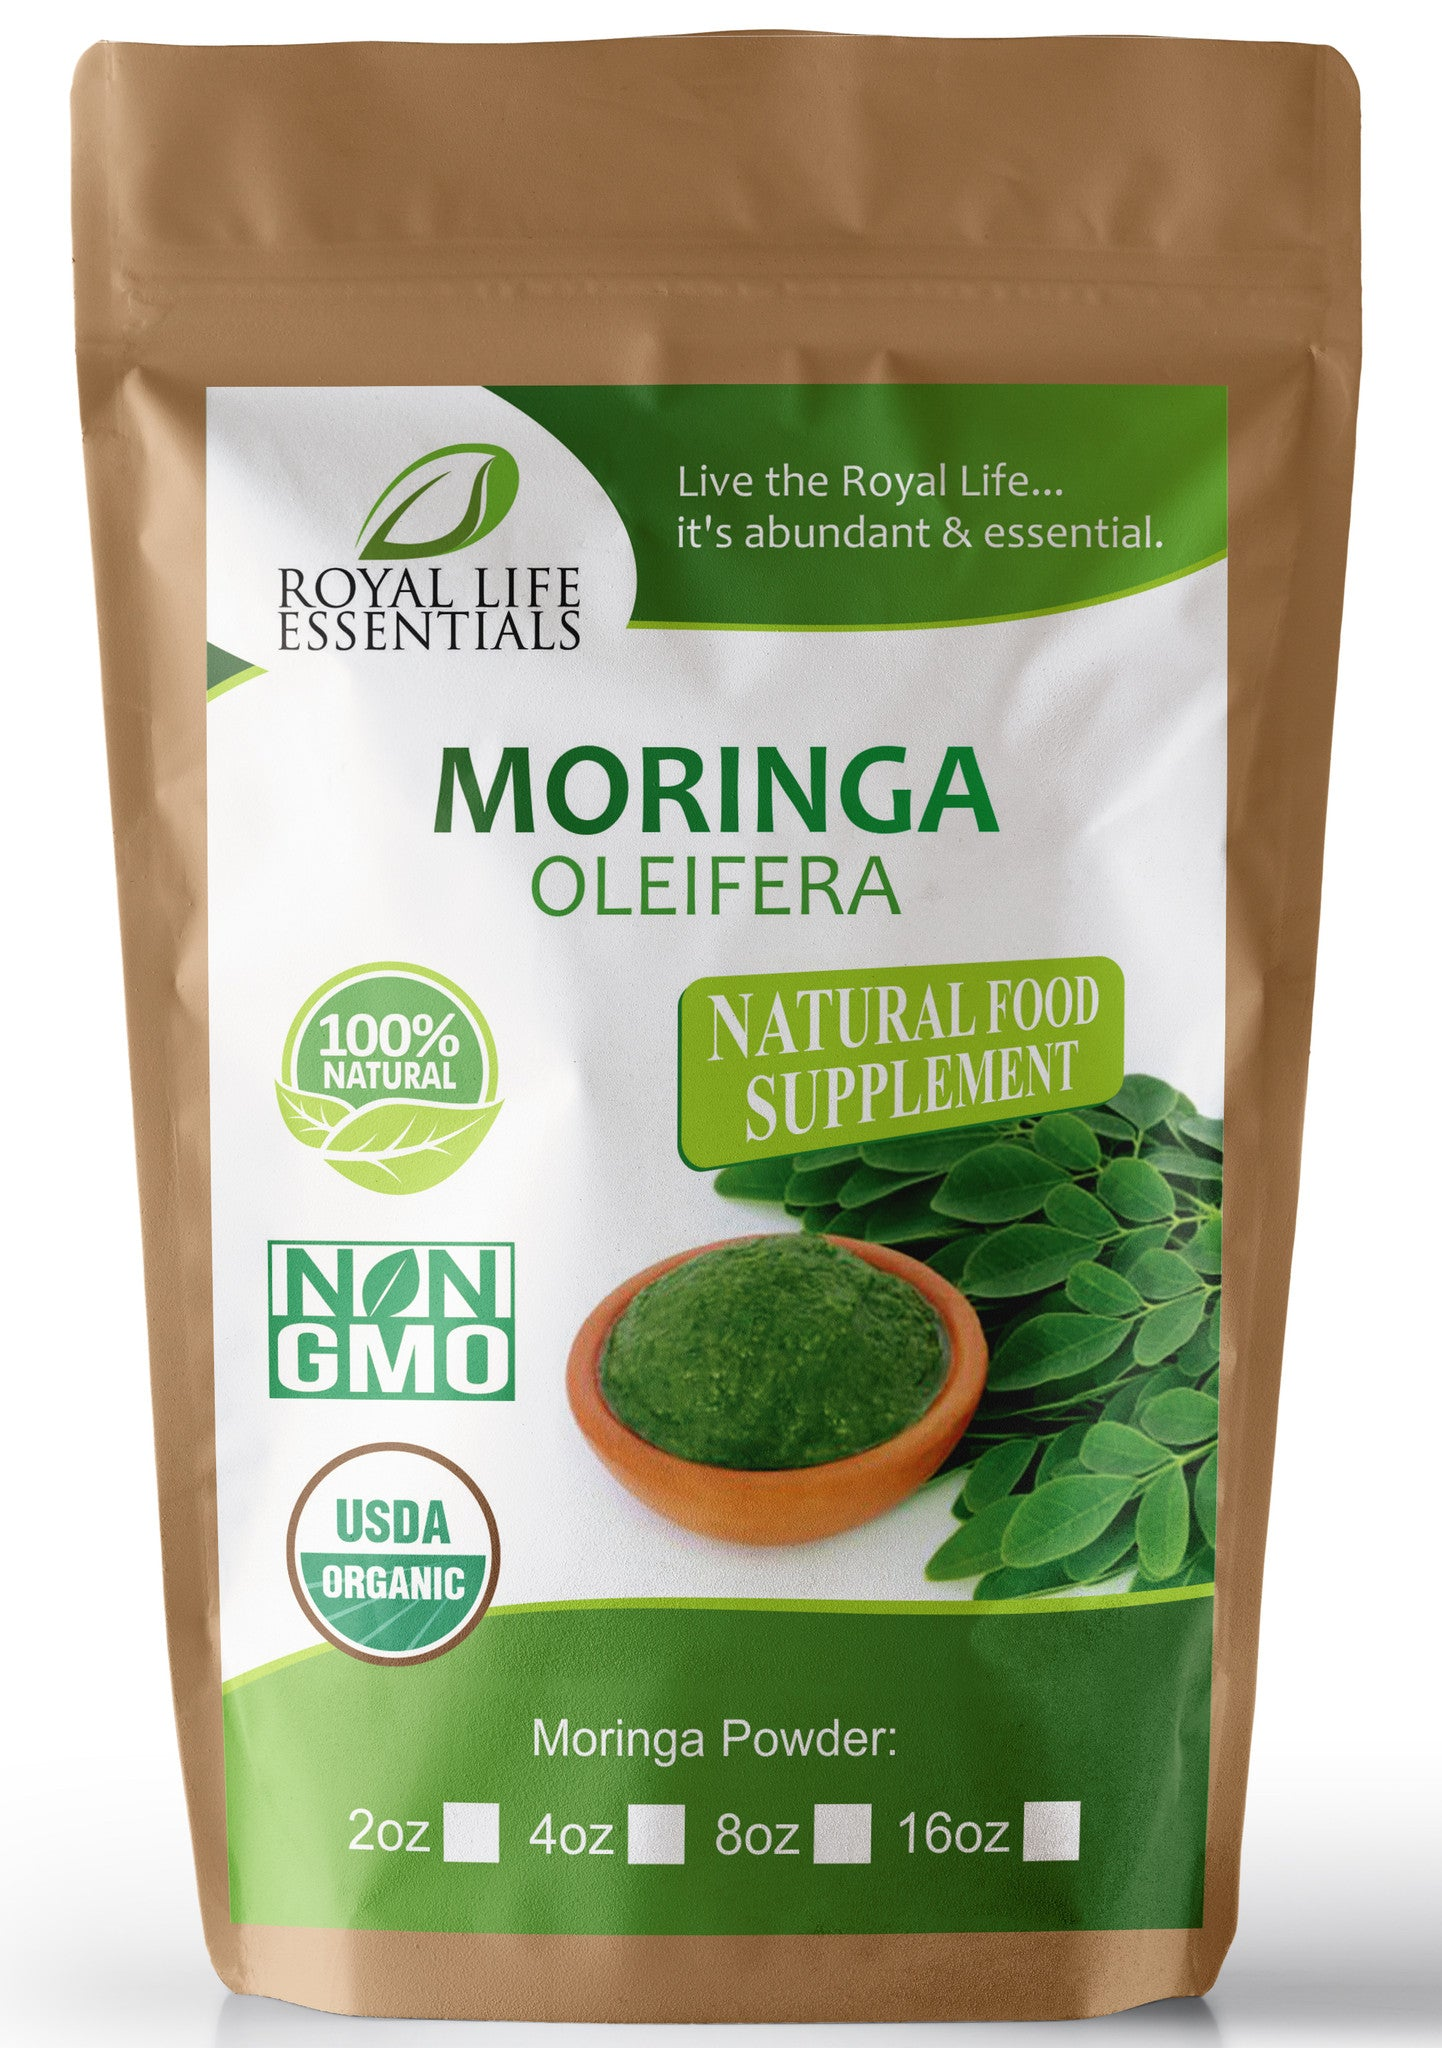 9 Specific Uses for the Moringa Tree to Improve Health